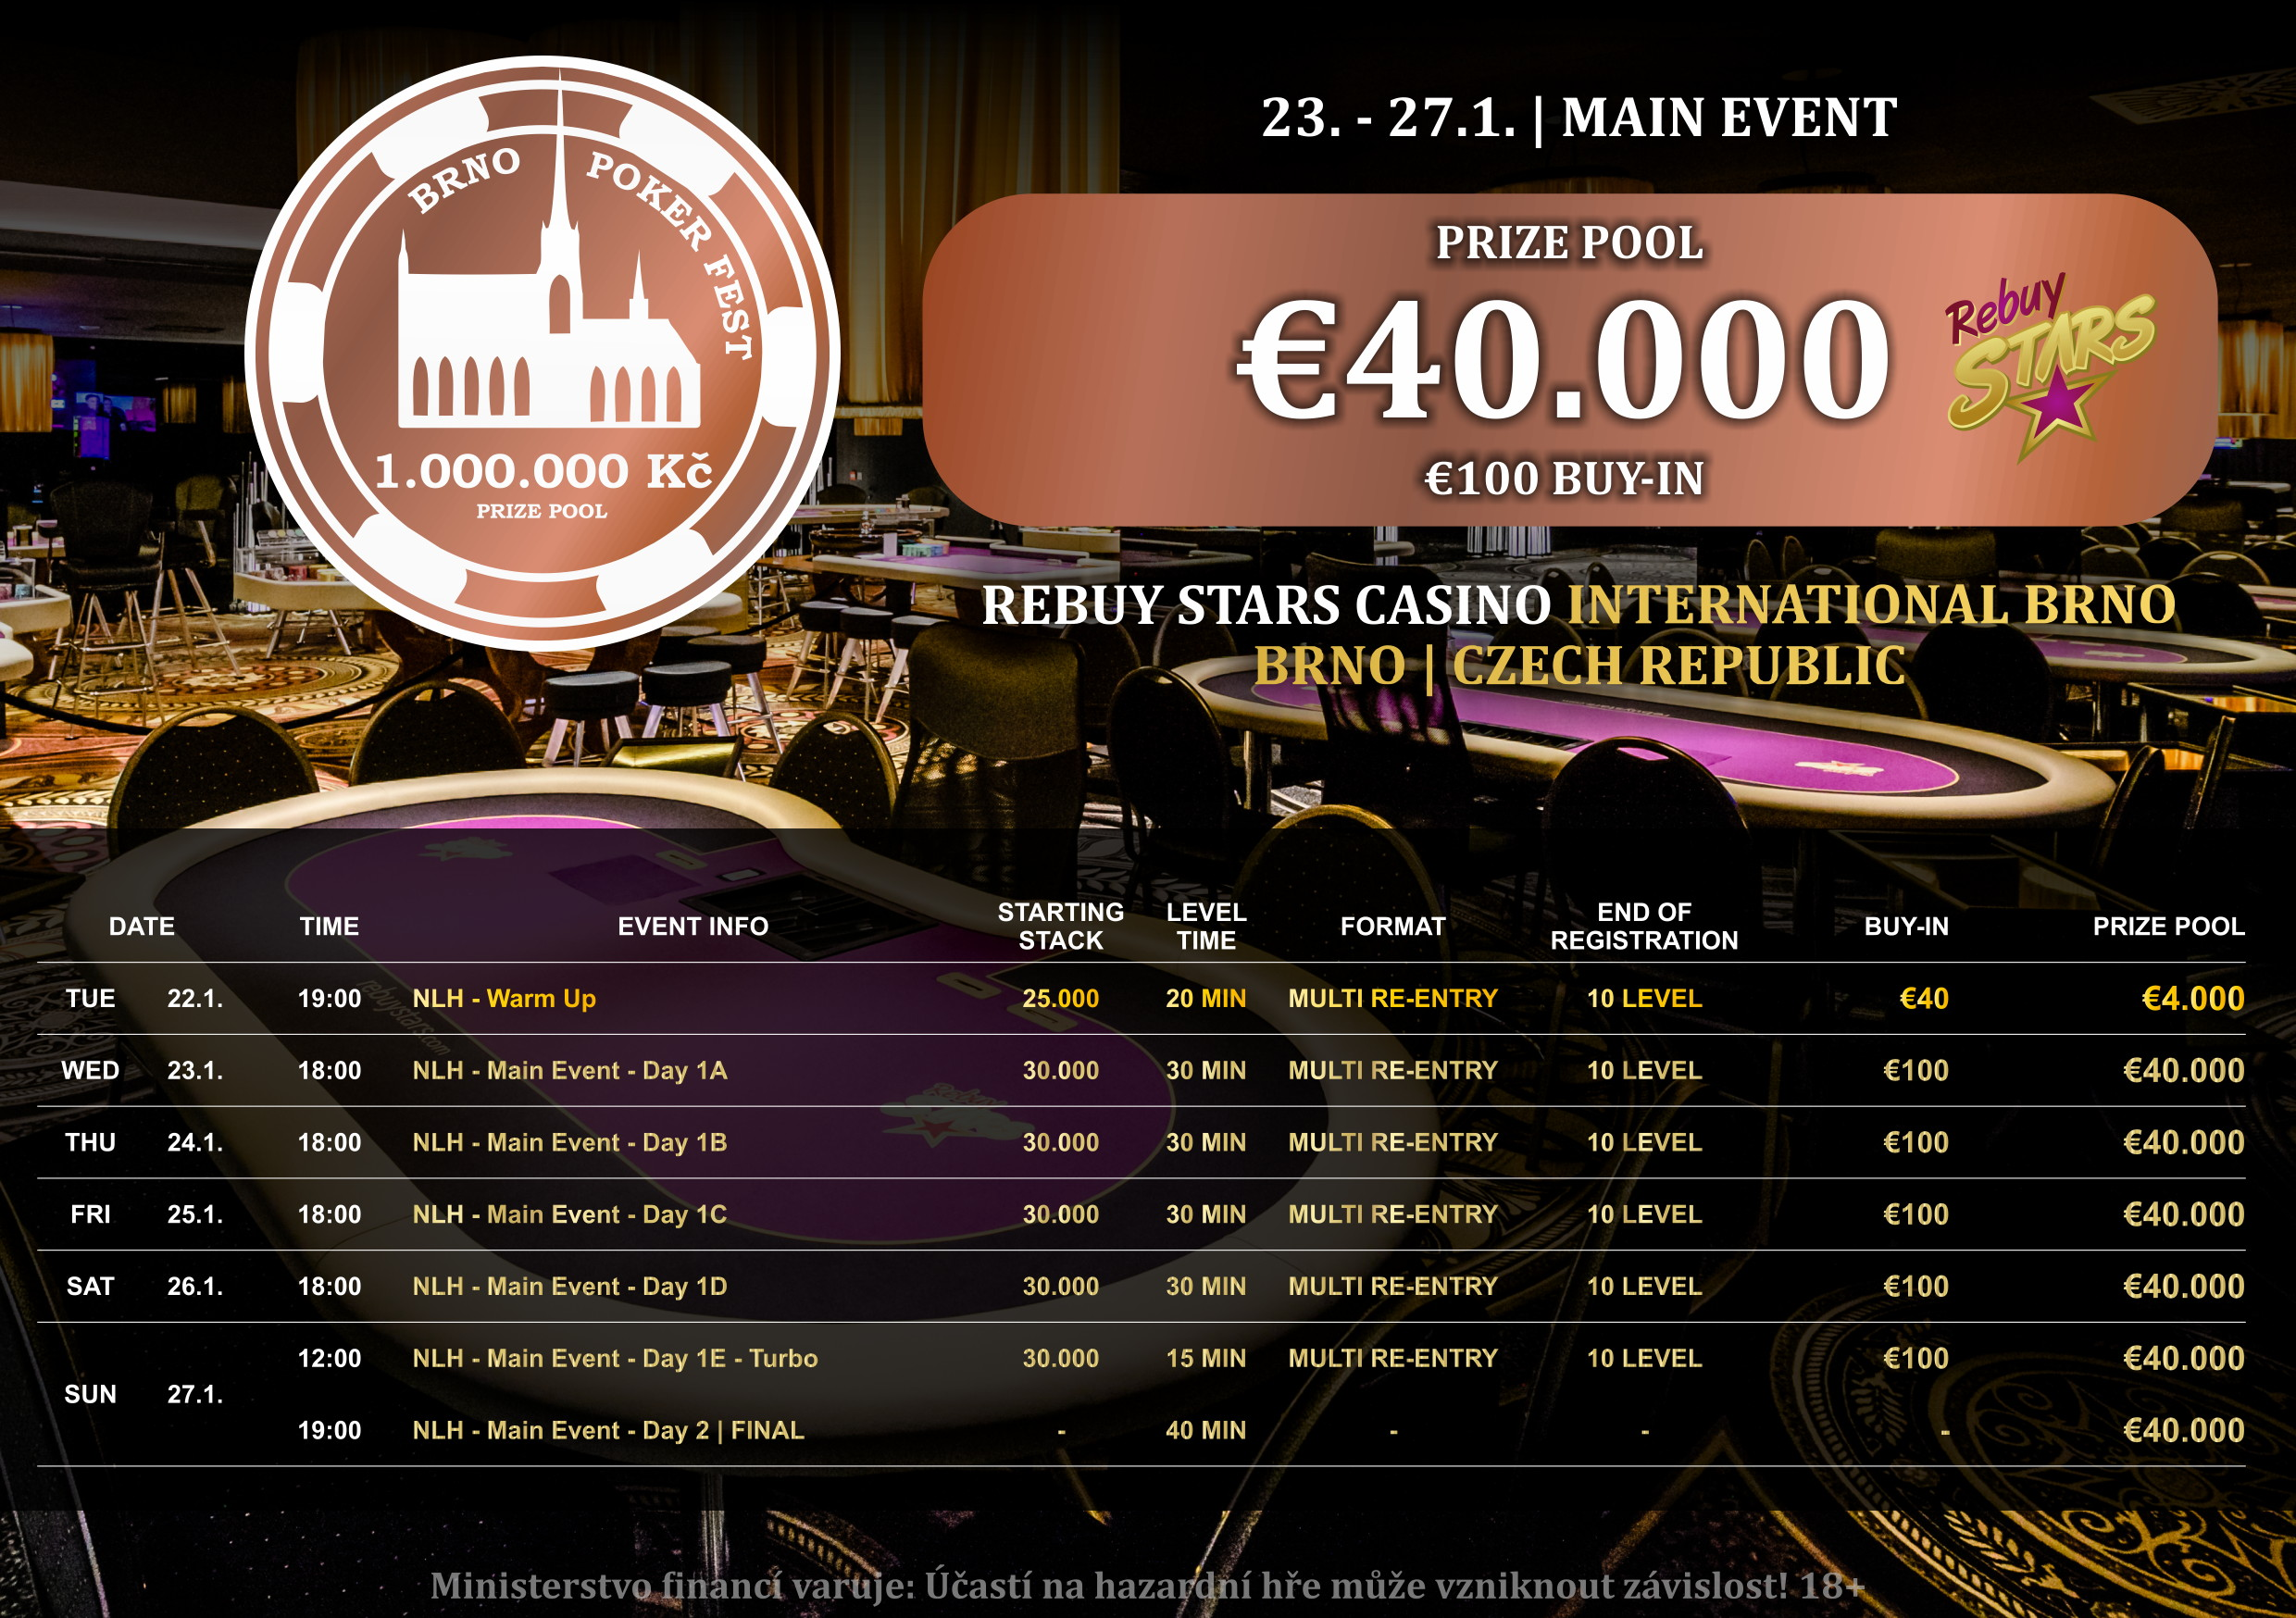 Poker Rebuy Rules